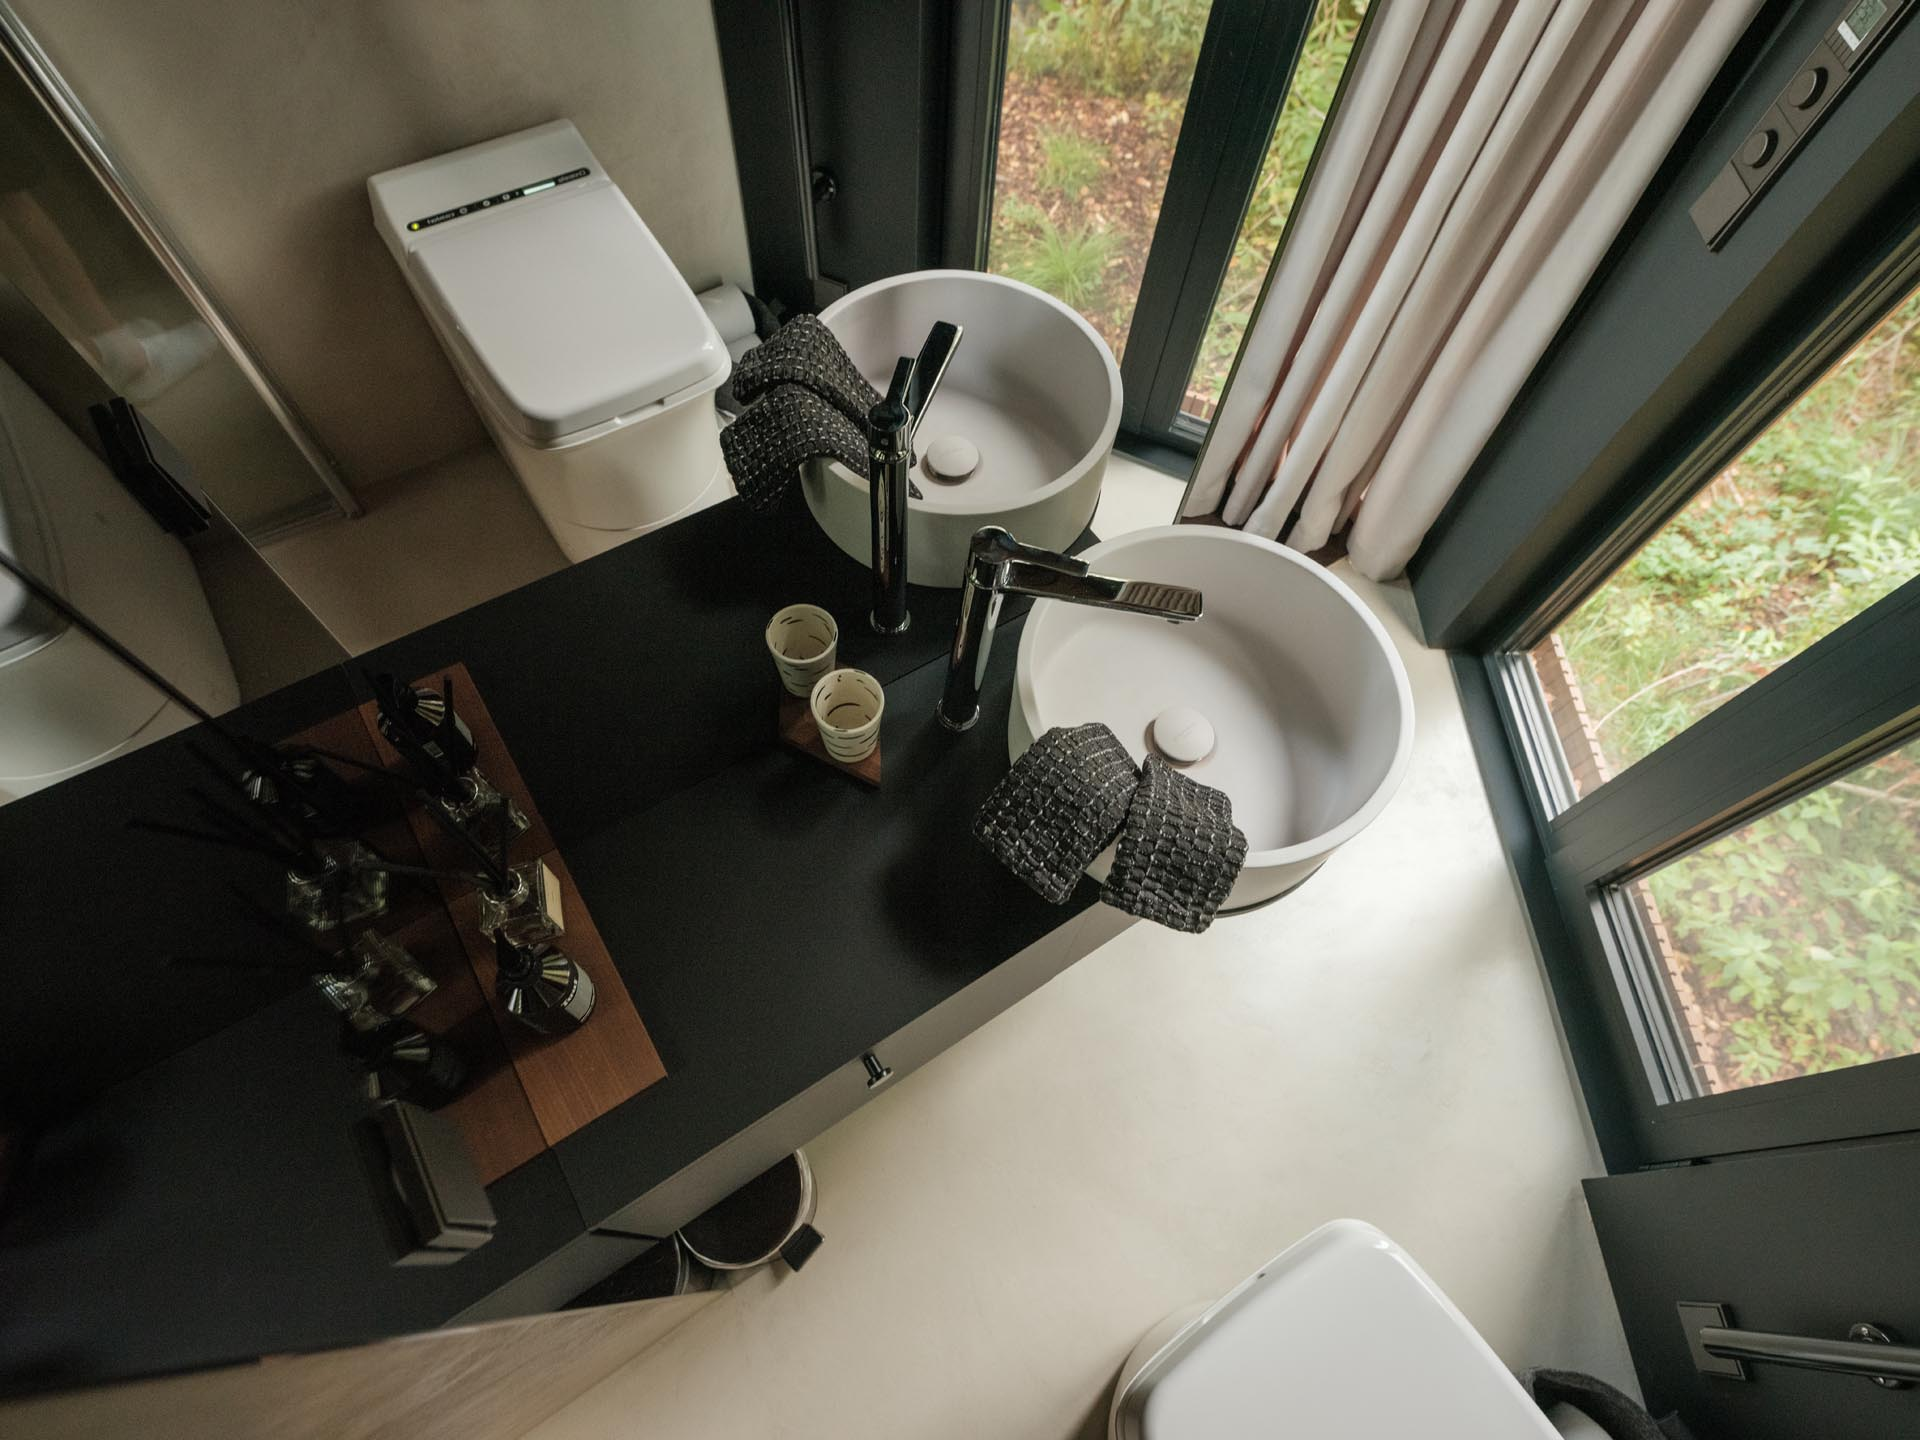 A small bathroom that includes floor-to-ceiling mirrors and an incineration toilet.